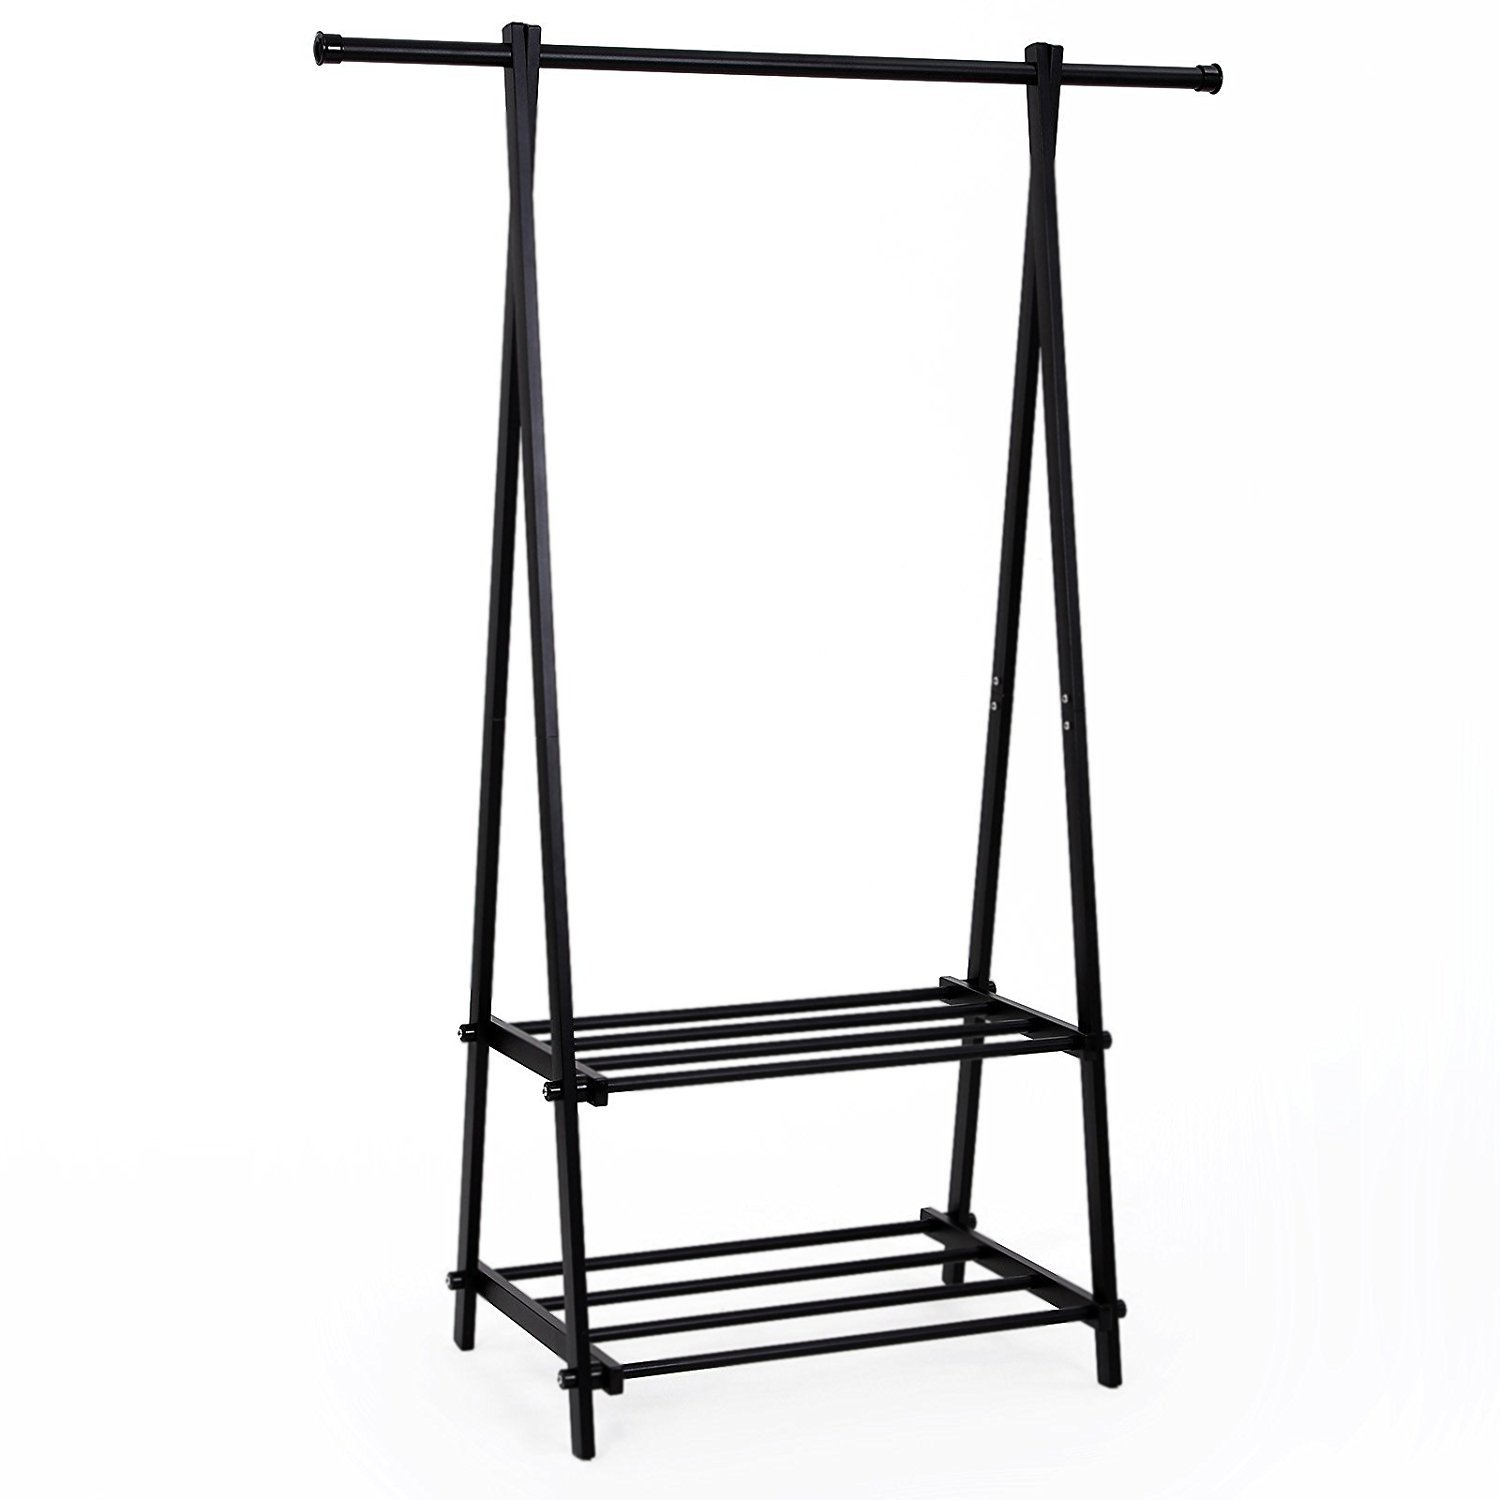 SONGMICS Clothing Garment Rack with 2-Tire Shelf for Shoes Clothes Storage Black URCR22B by SONGMICS (Image #1)